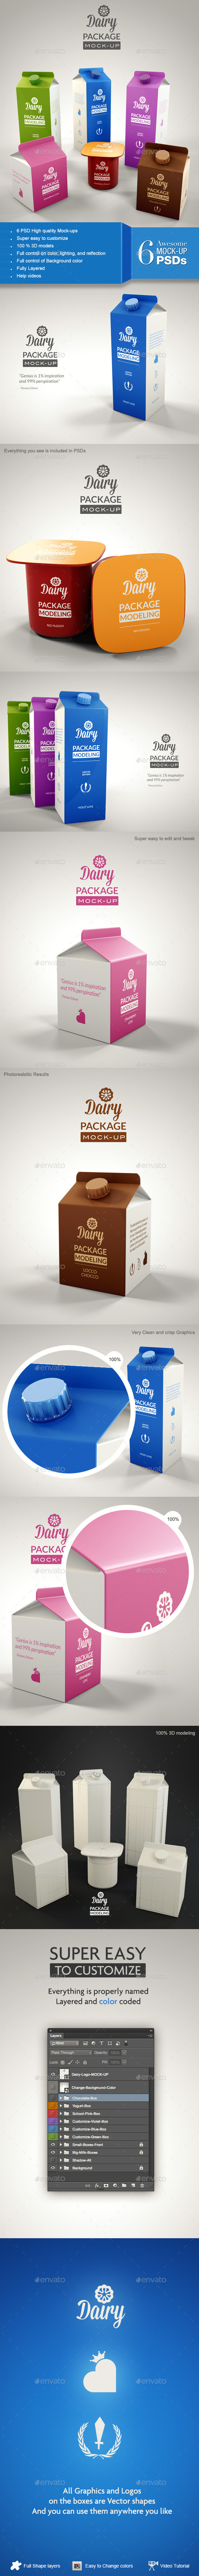 Dairy Branding Package Mock-up - Product Mock-Ups Graphics